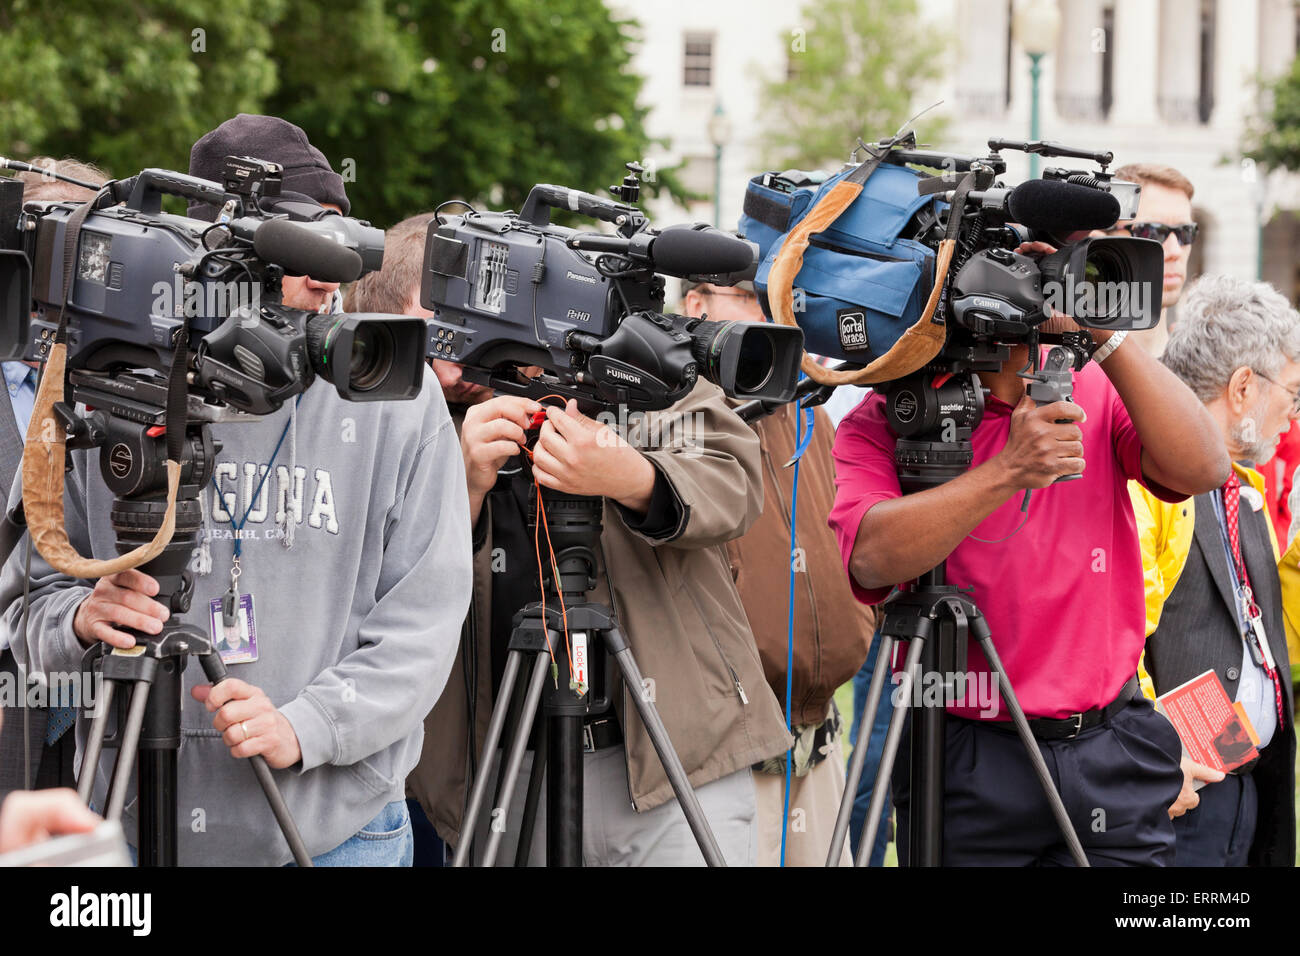 Media cameramen at a press event - Washington, DC USA - Stock Image